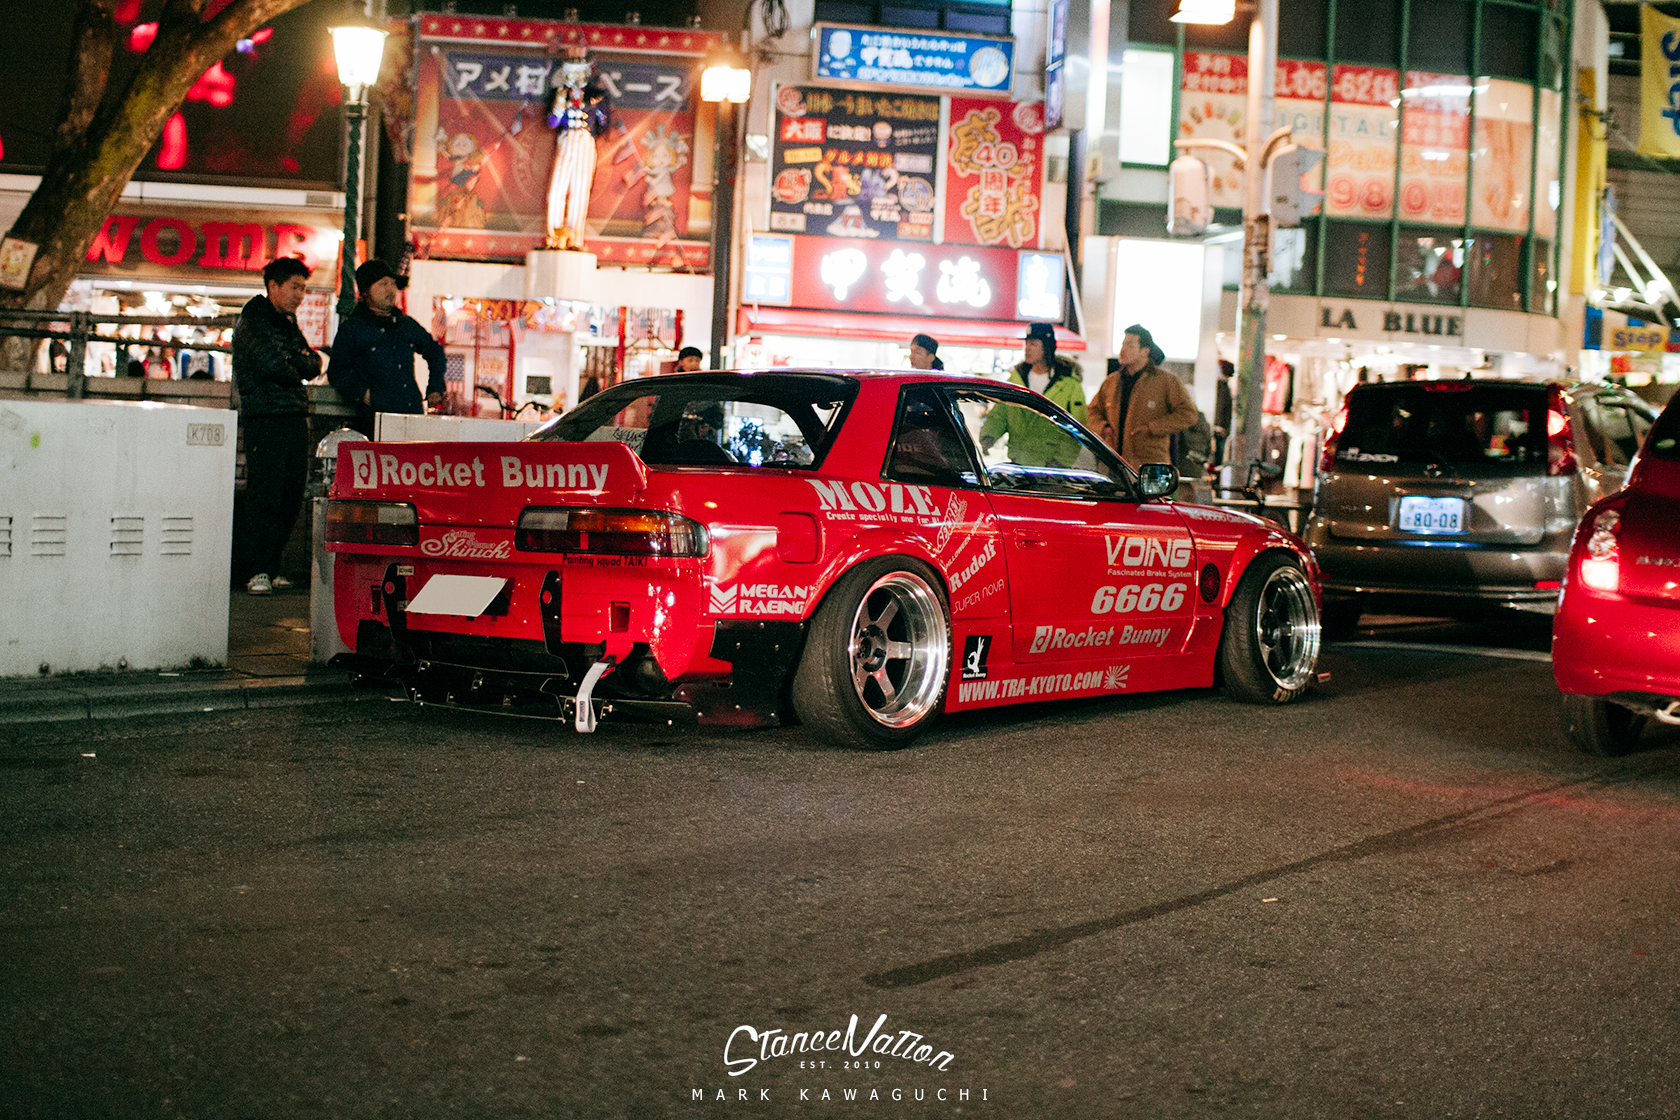 rocket-bunny-nissan-japan-6666-customs-S13-21